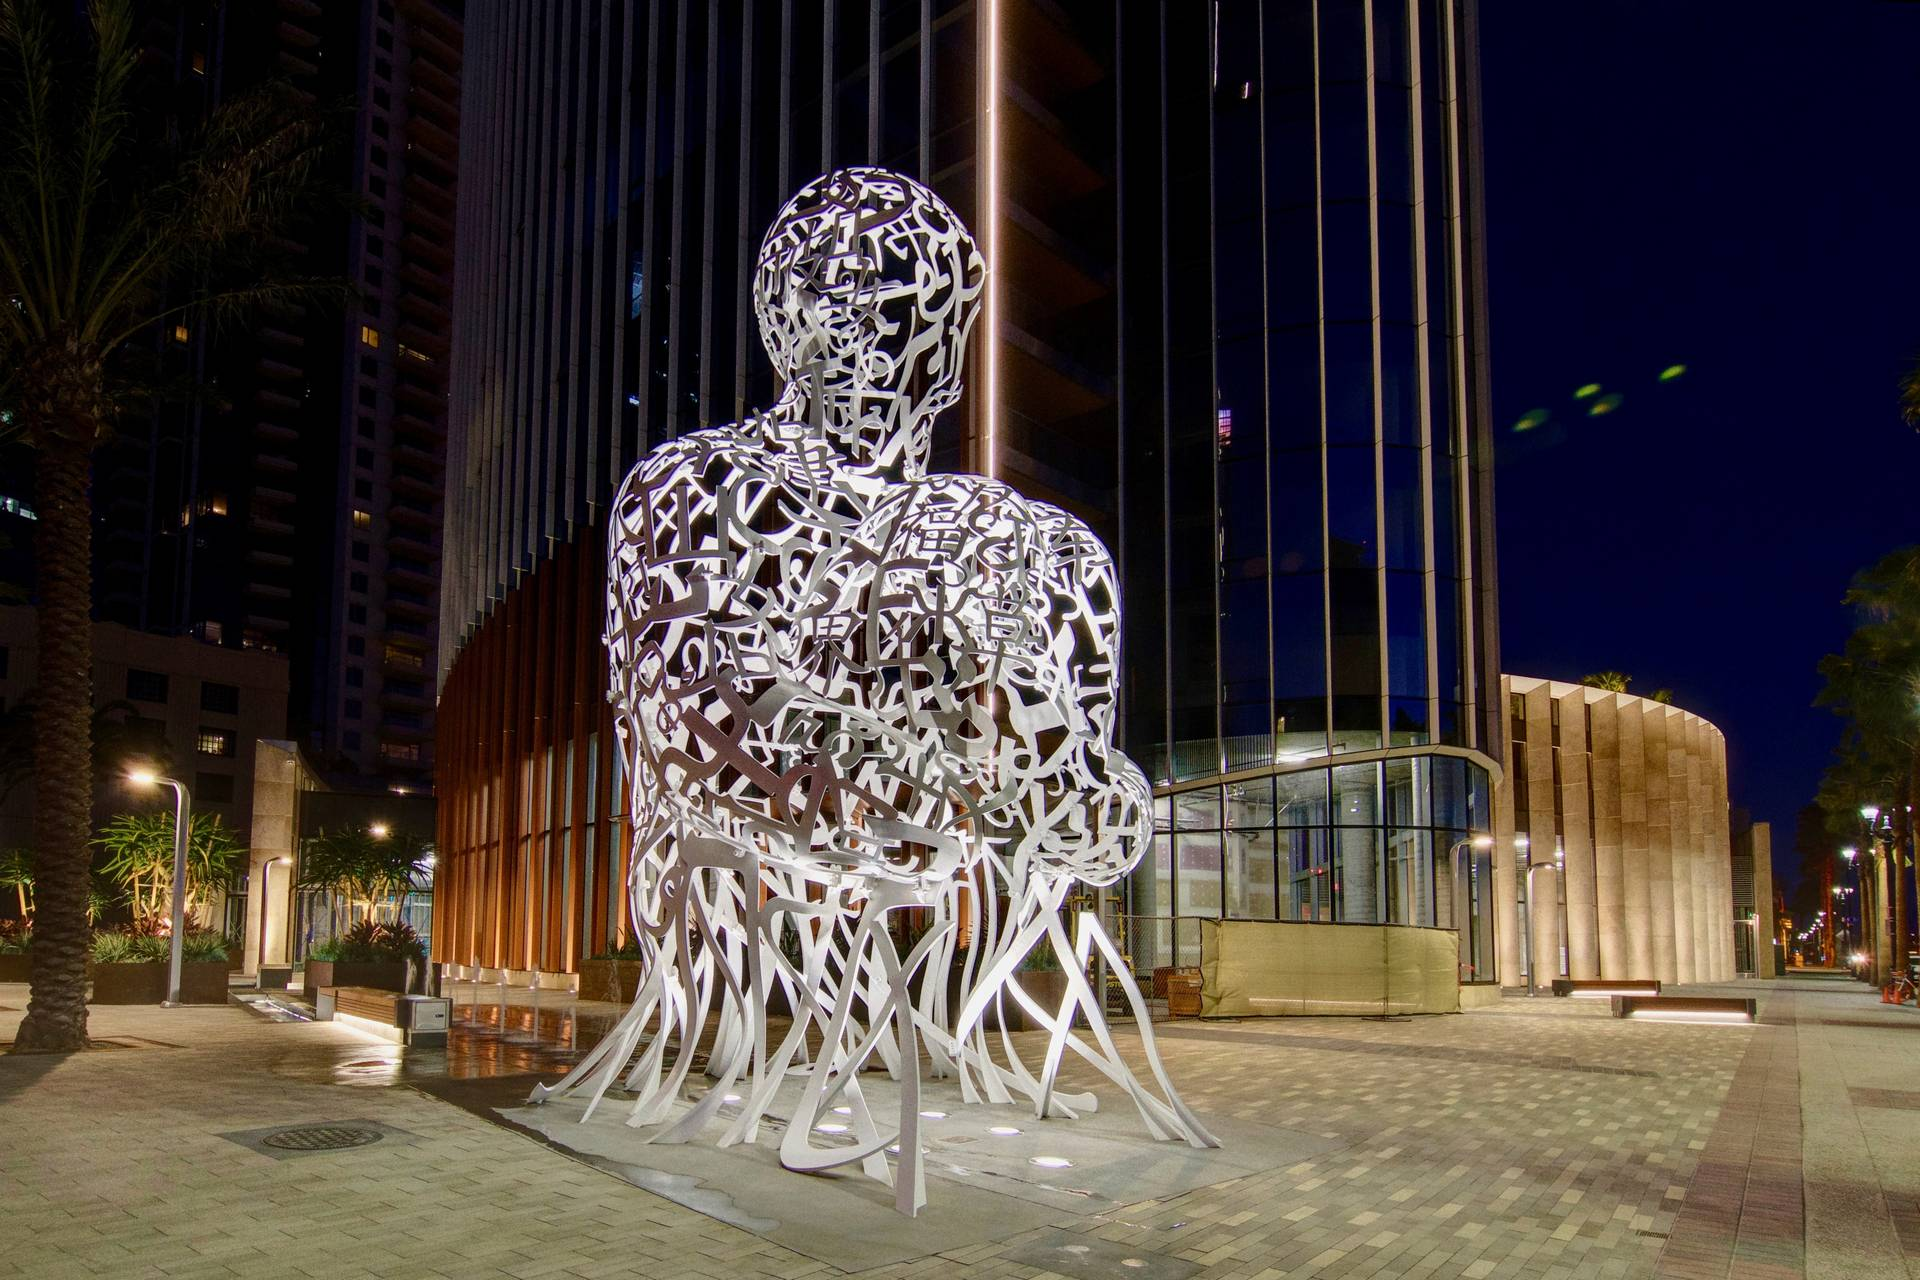 Pacific Gate Street Art by Jaume Plenza